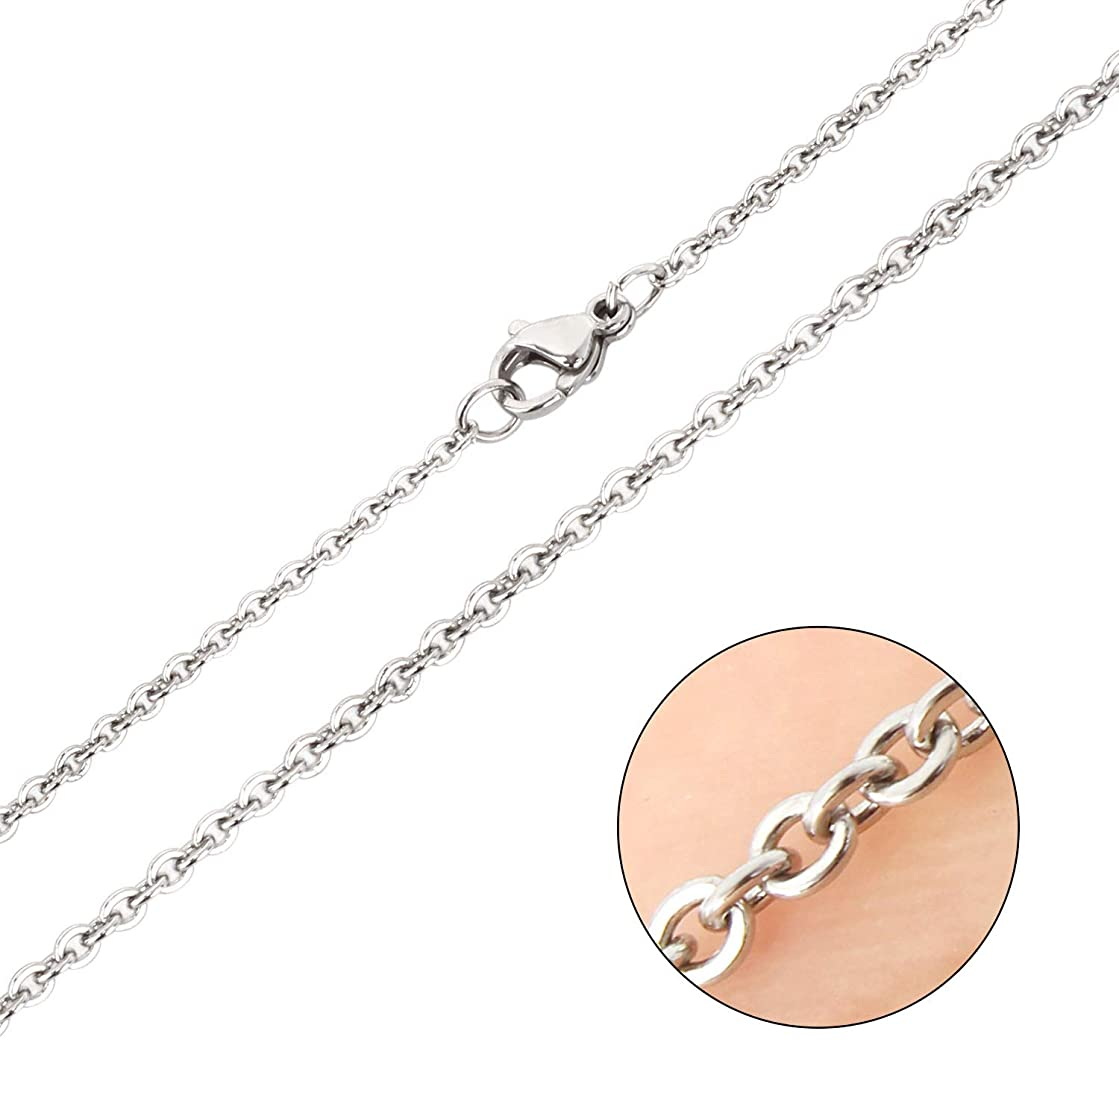 Wholesale 12 PCS Stainless Steel Flat Cable Chain Finished Necklace Chains Bulk for Jewelry Making,(18 Inch(1.5MM))